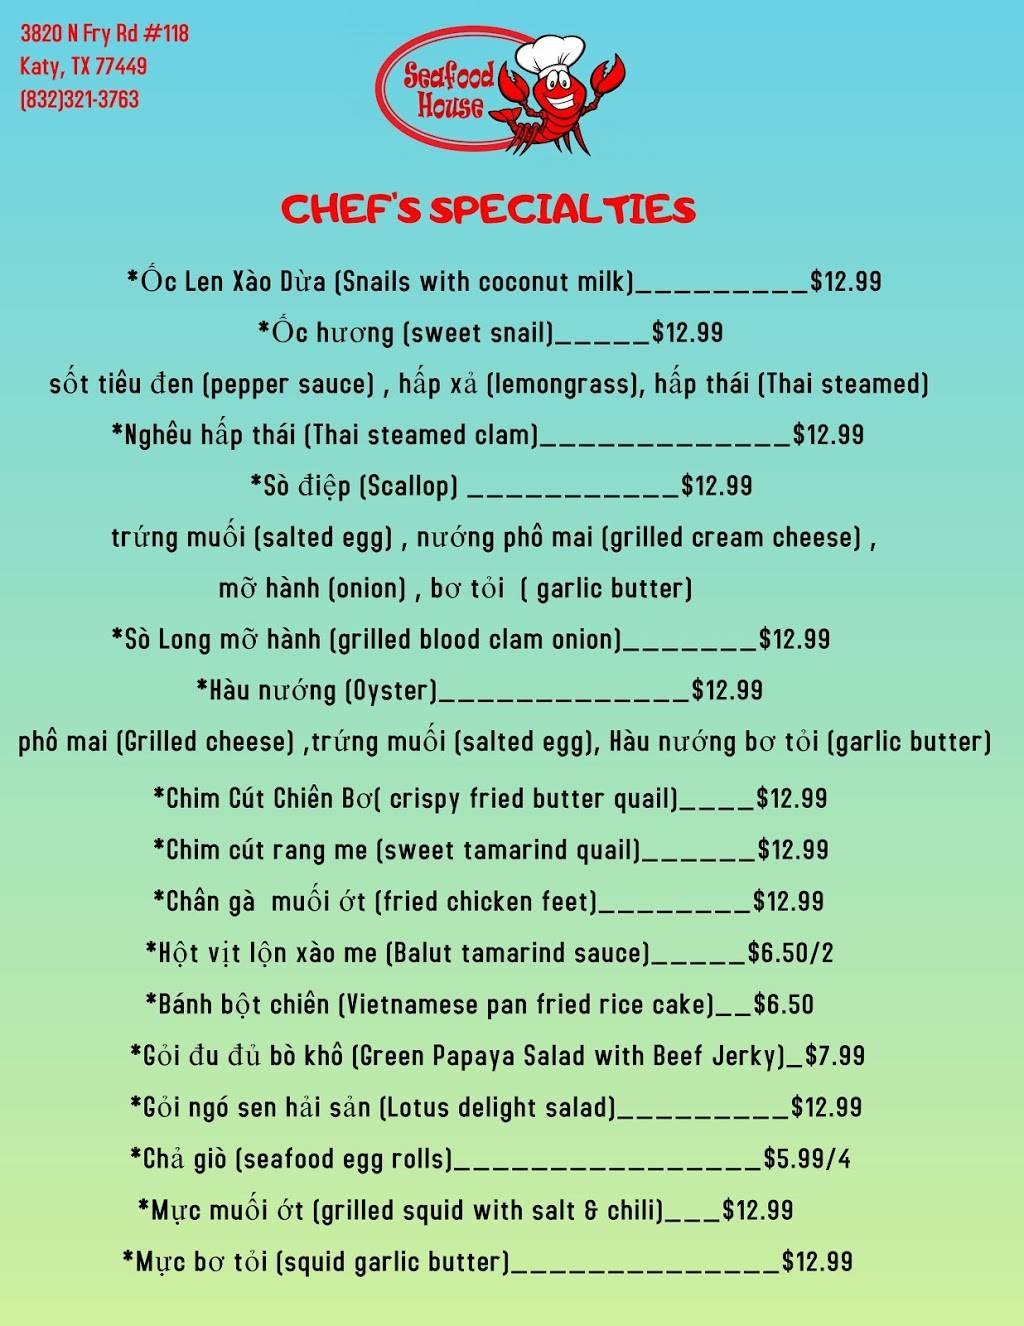 Seafood house   restaurant   3820 N Fry Rd ste 118, Katy, TX 77449, USA   8323213763 OR +1 832-321-3763